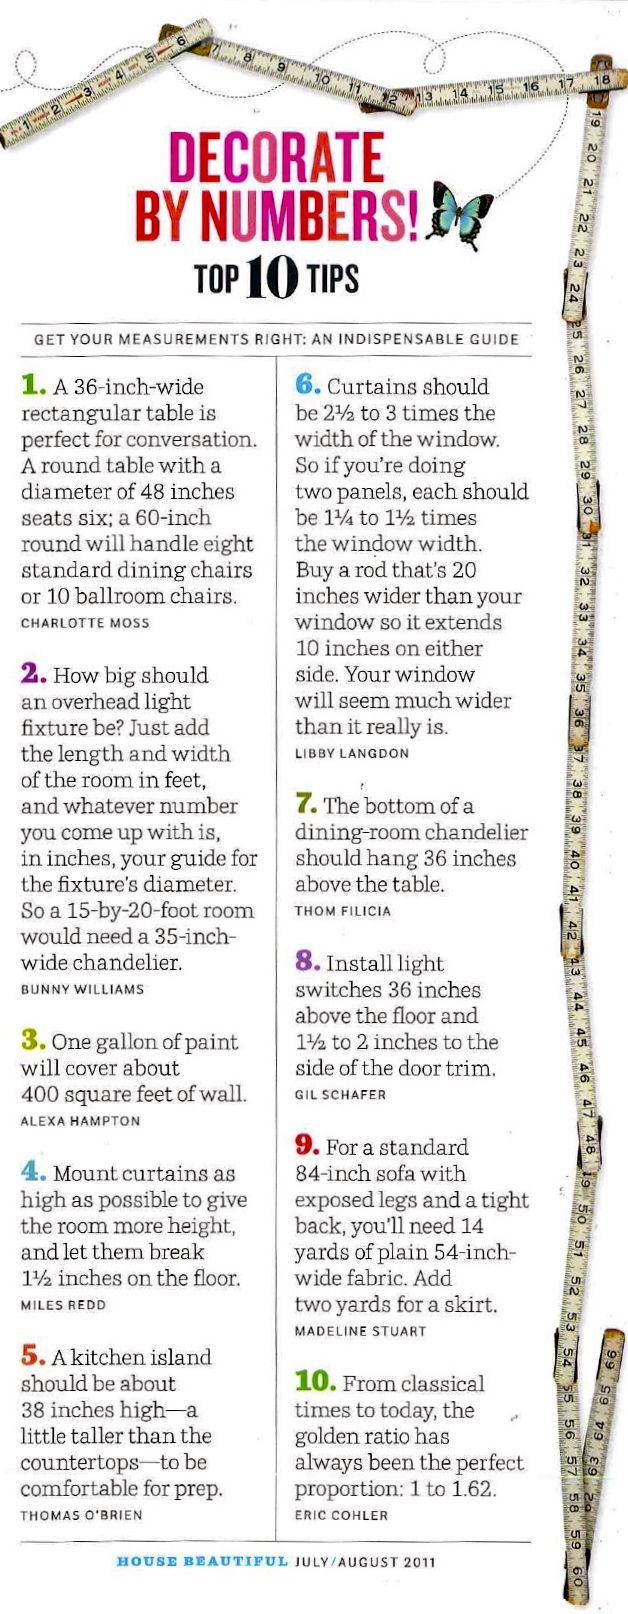 House Beautiful handy Tips decorating..